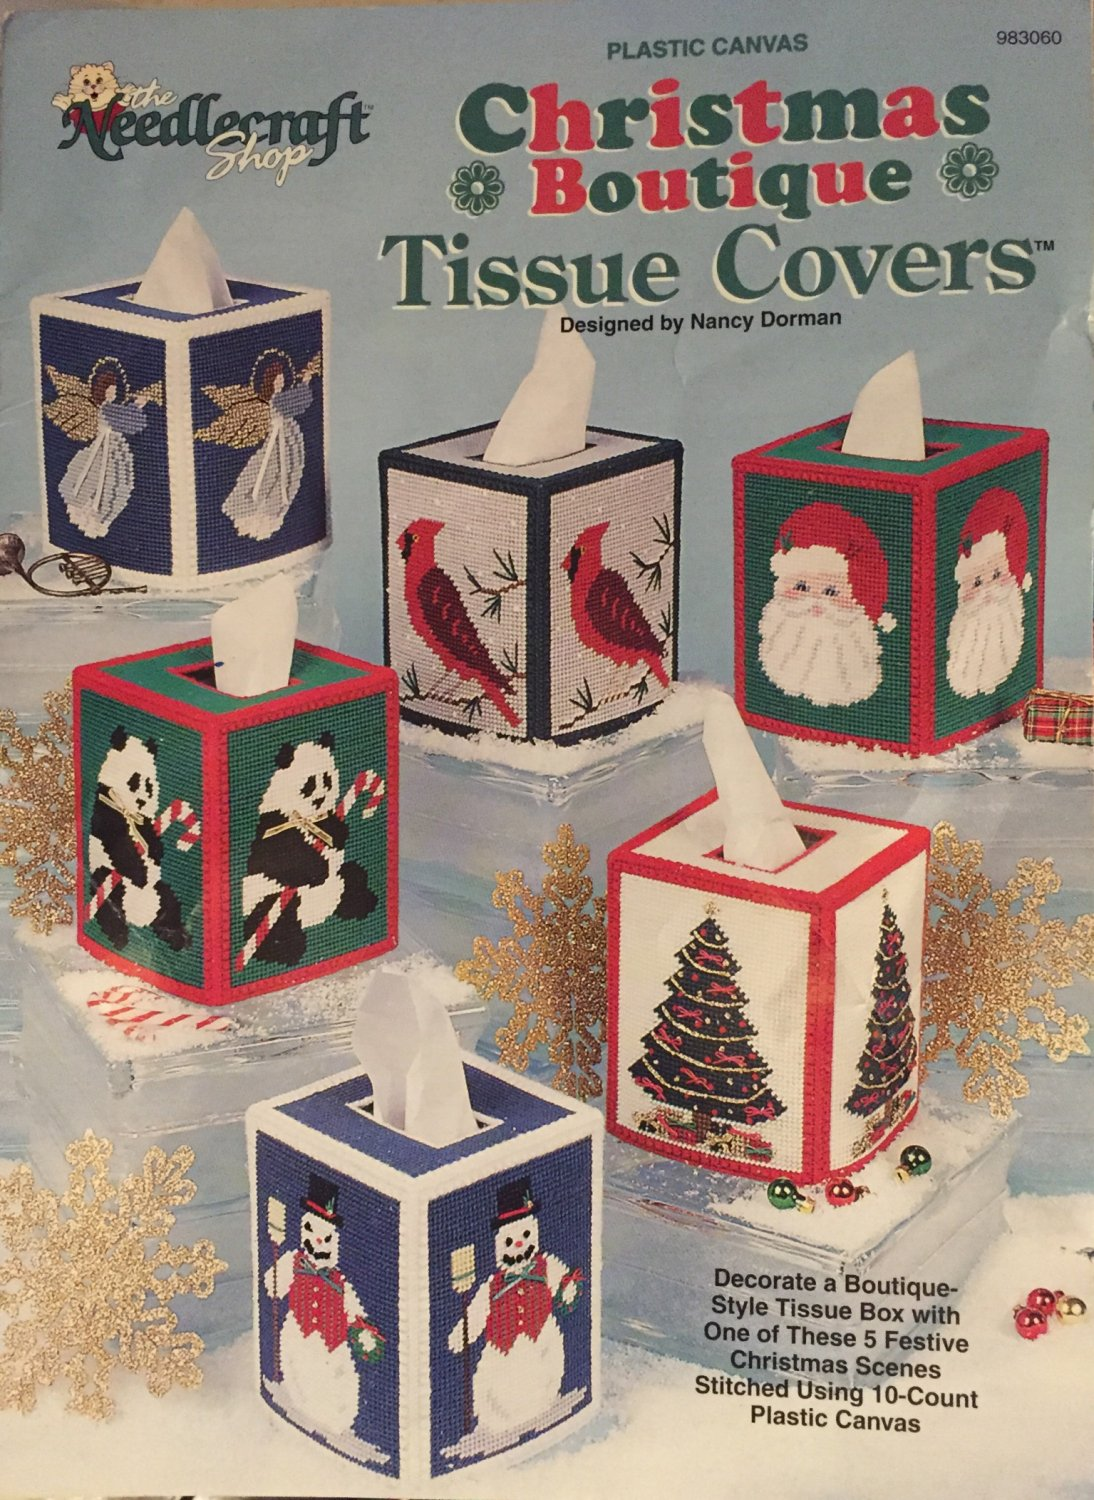 Christmas Boutique Tissue Cover Plastic Canvas pattern The Needlecraft Shop 983060